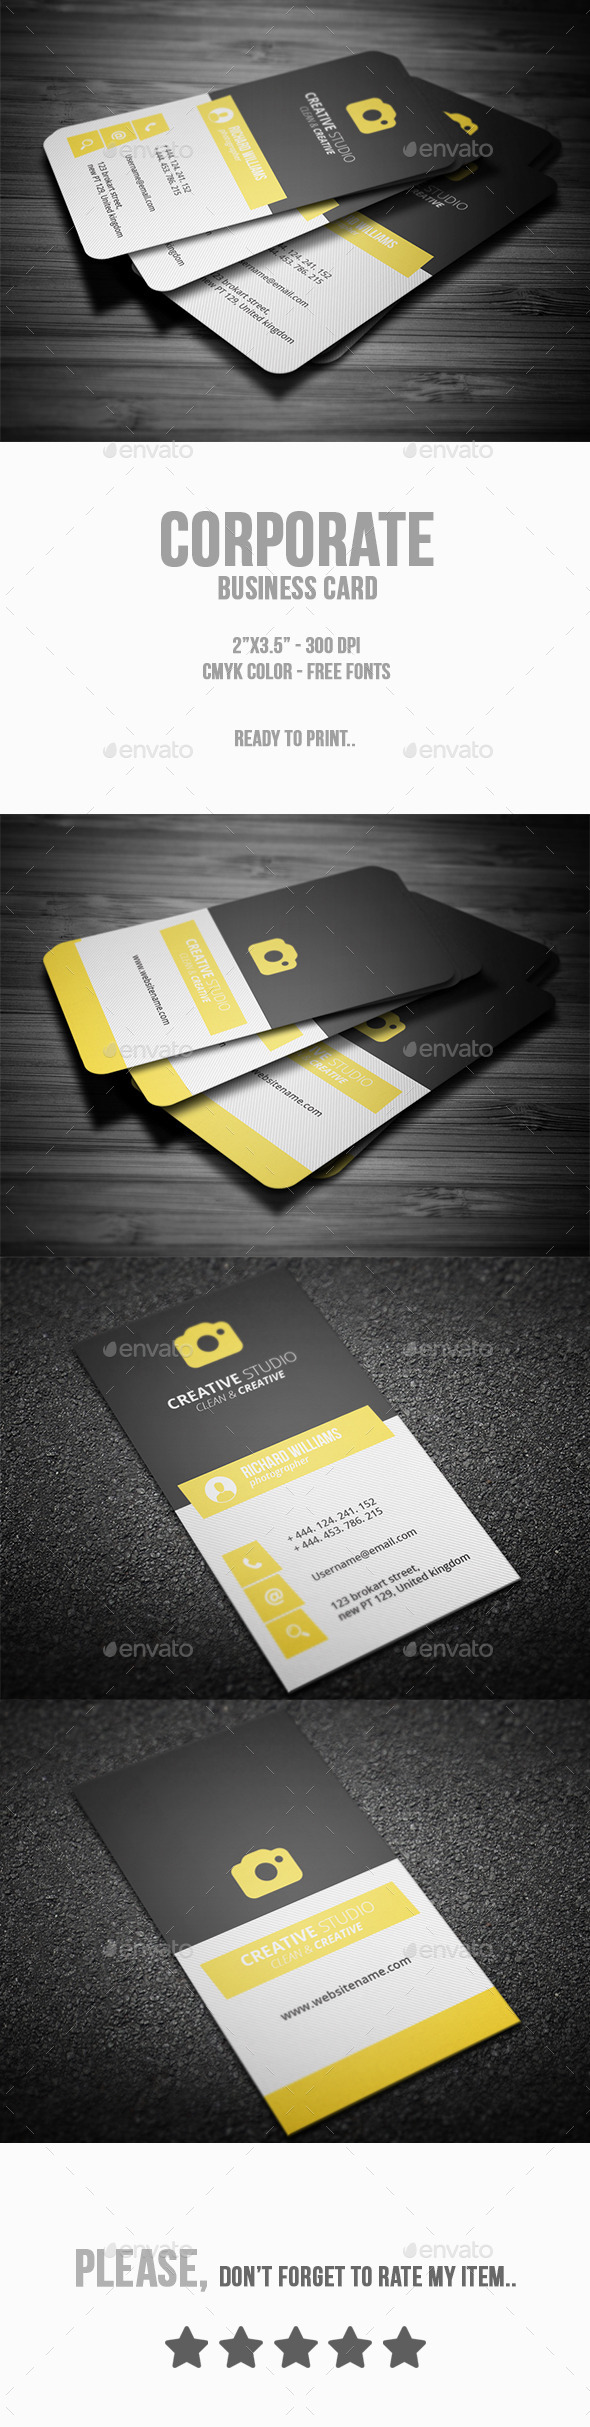 GraphicRiver Corporate Business Card 10150003